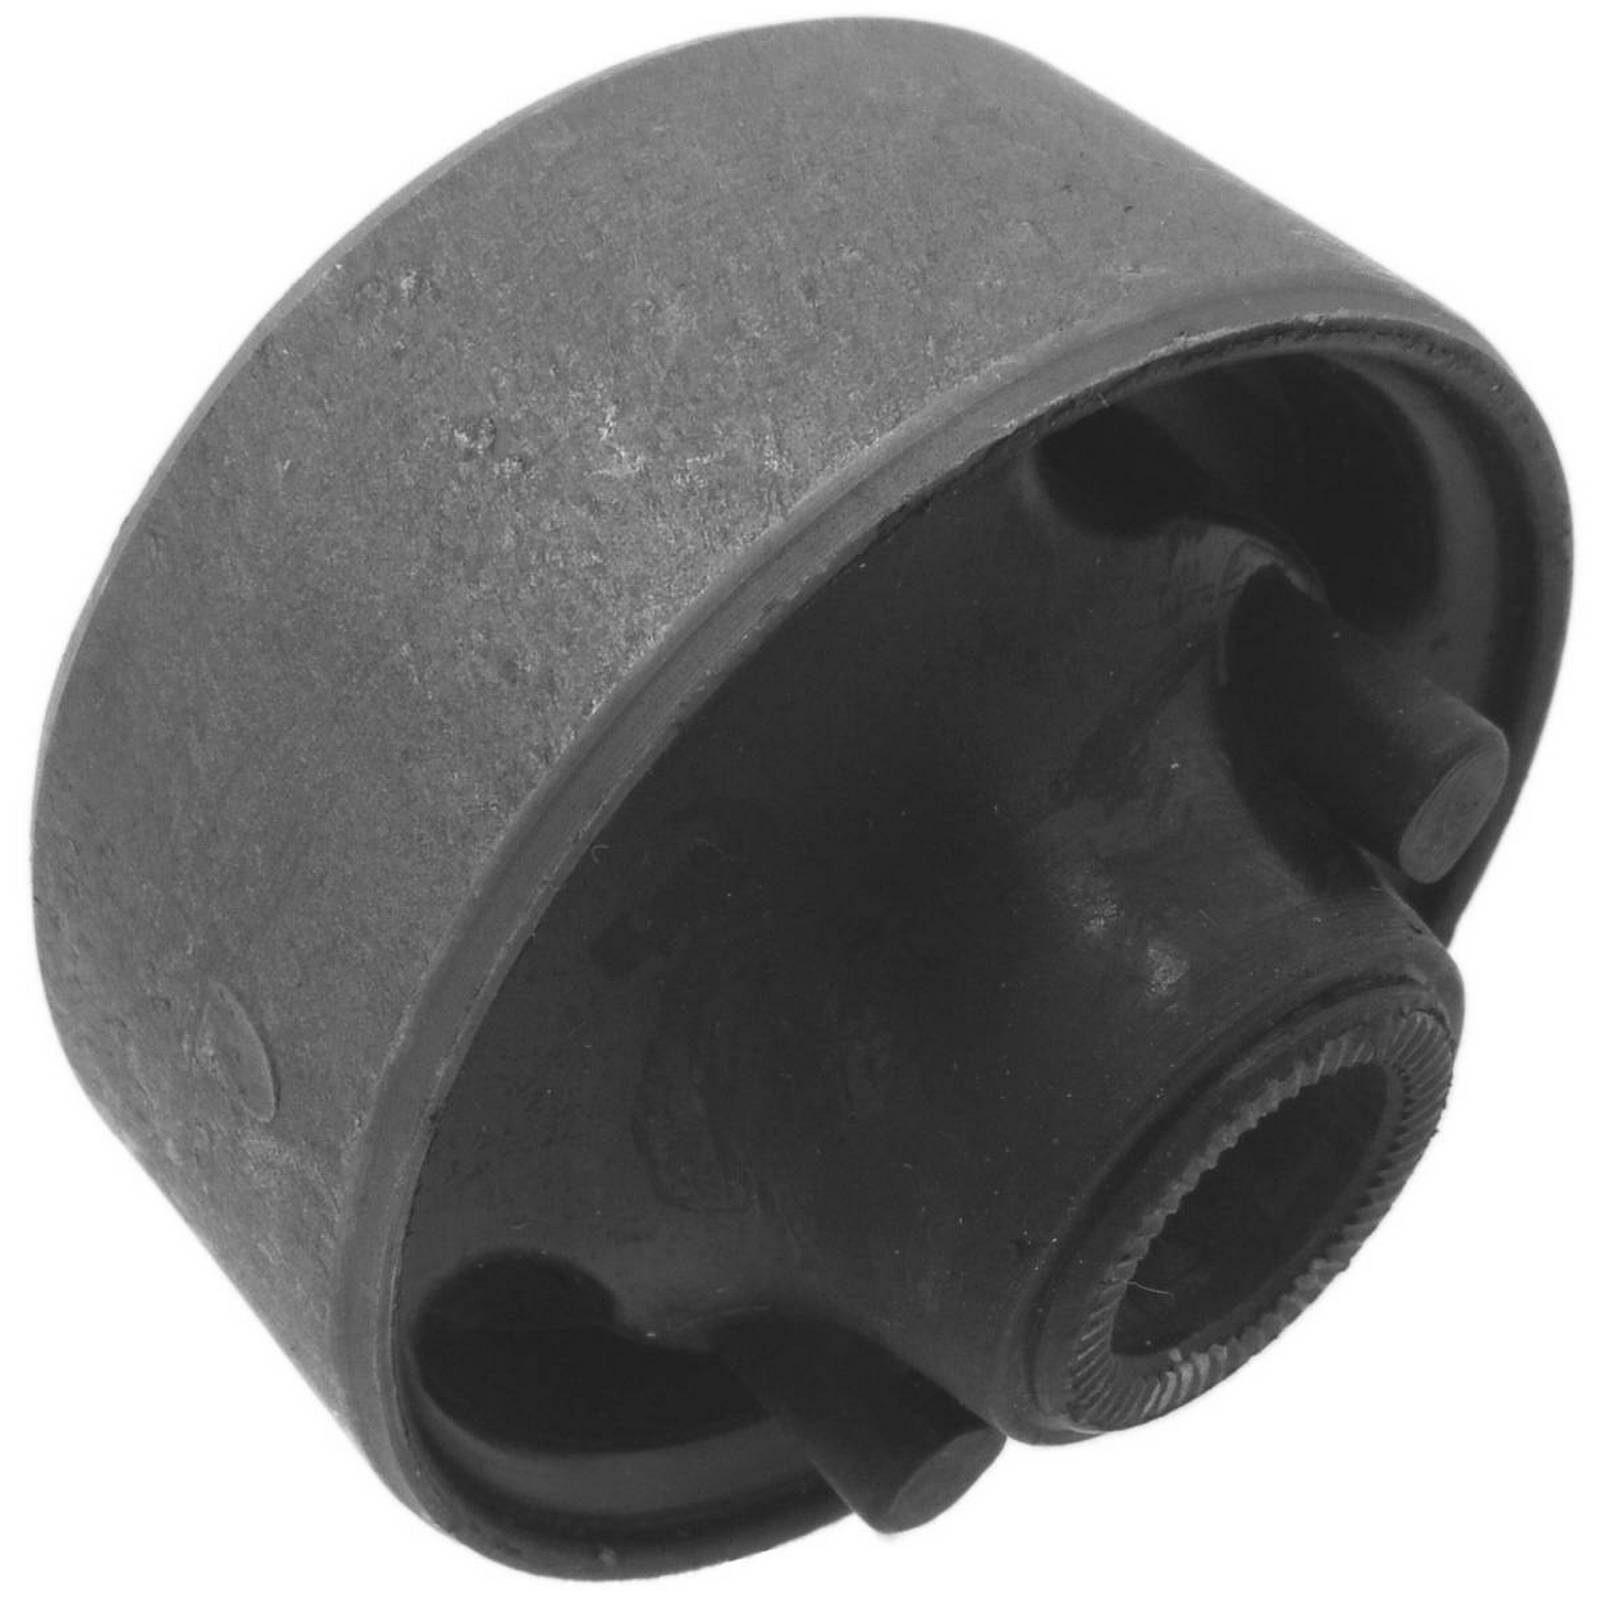 REAR ARM BUSHING FRONT ARM For Toyota CAMRY 1991-1996 OEM 48069-33020